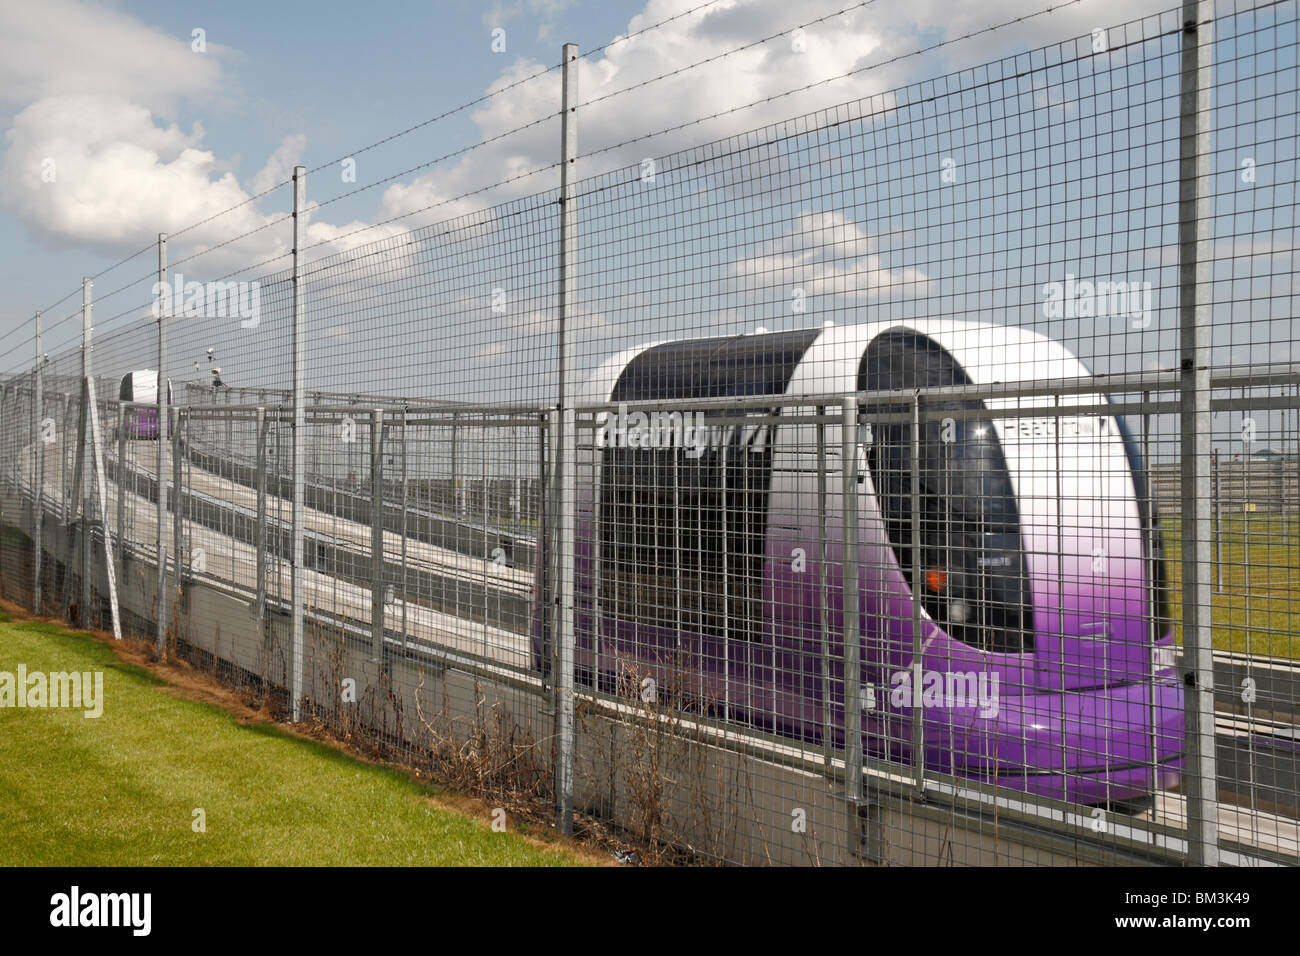 A Personal Rapid Transport (PRT) pod during testing at Heathrow Airport, London, UK. May 2010 - Stock Image